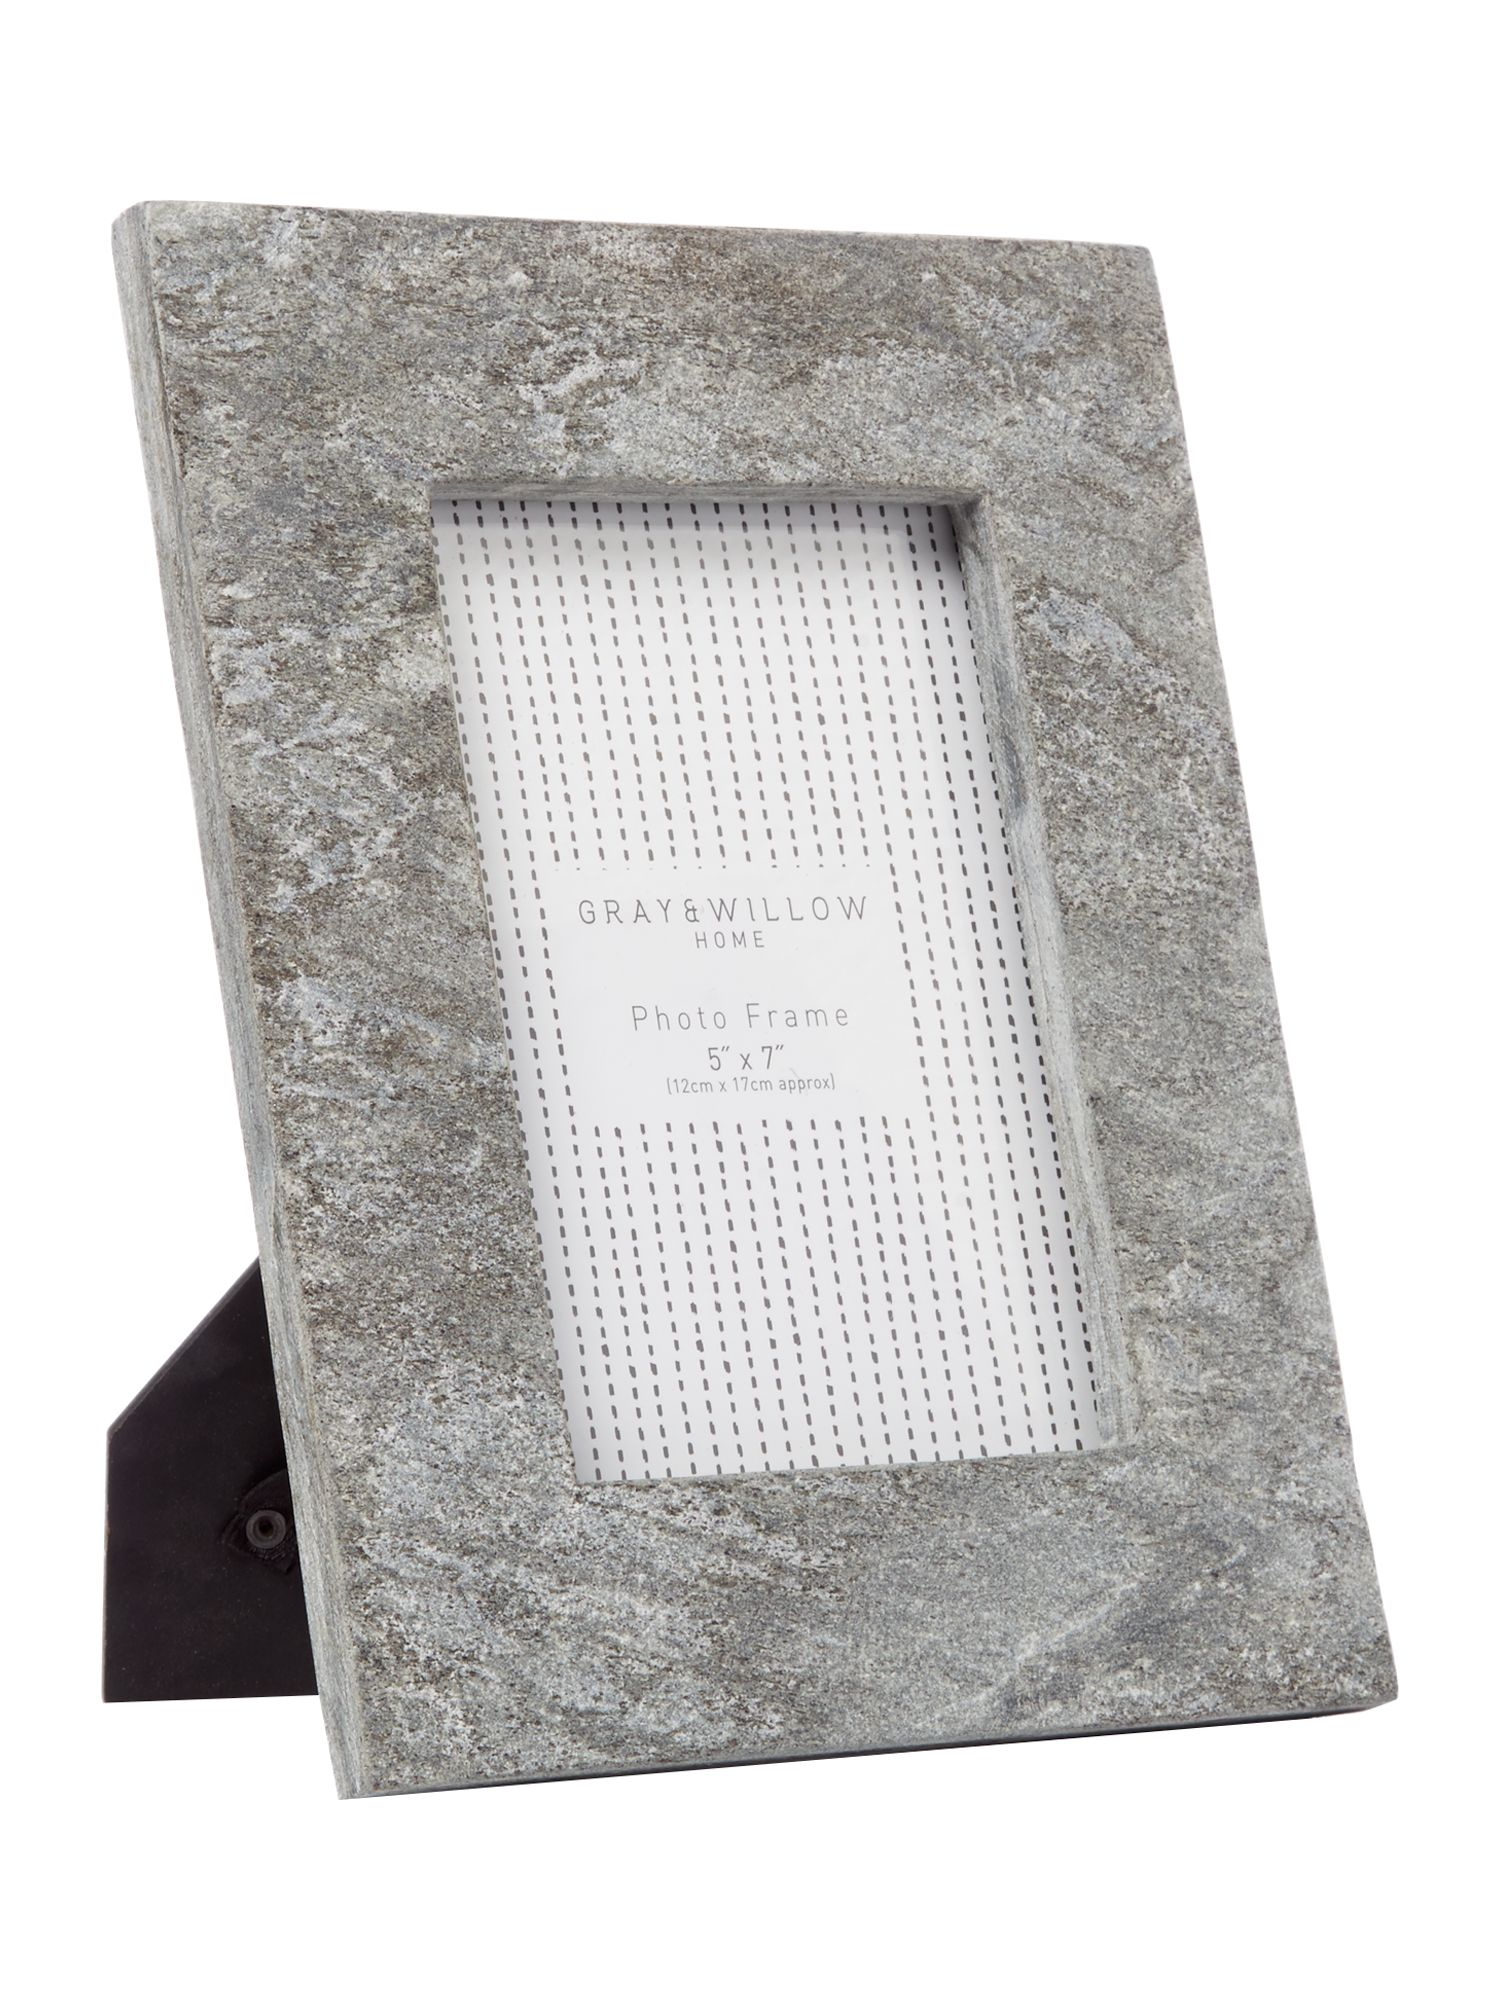 Gray & Willow Gray & Willow Silver Slate Frame 5x7